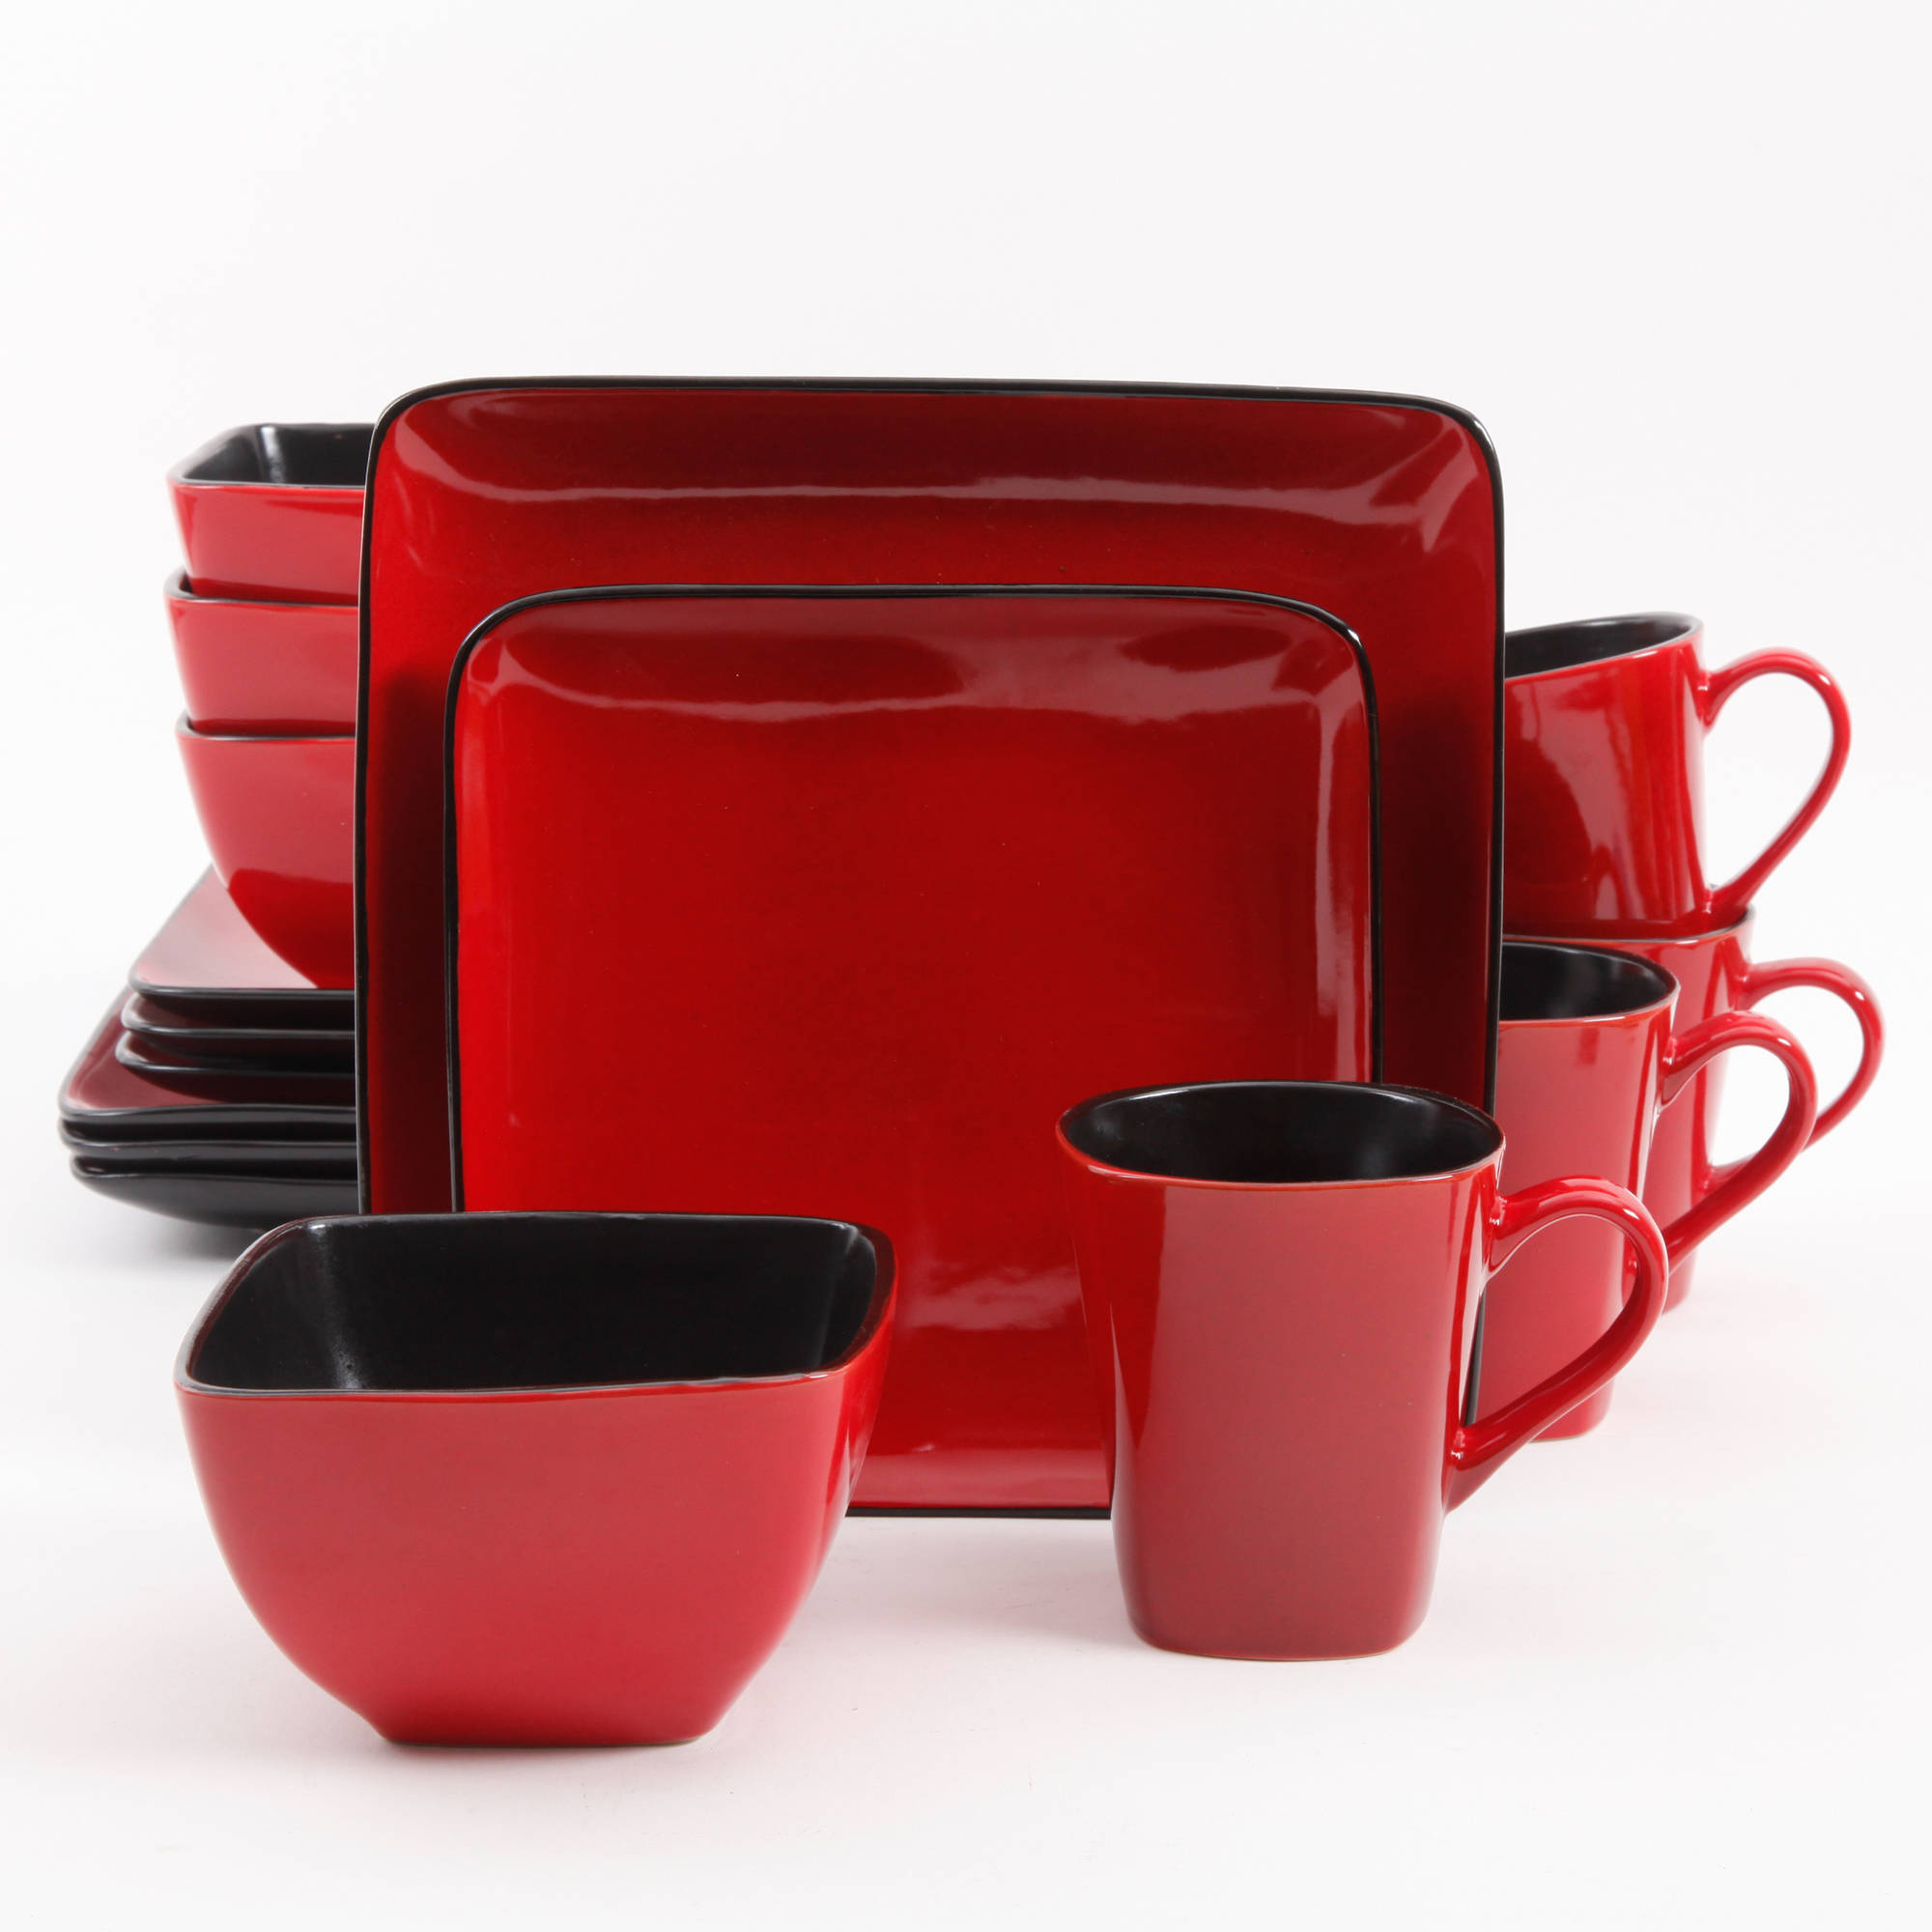 & Better Homes and Gardens Rave 16-Piece Square Dinnerware Set Red | eBay